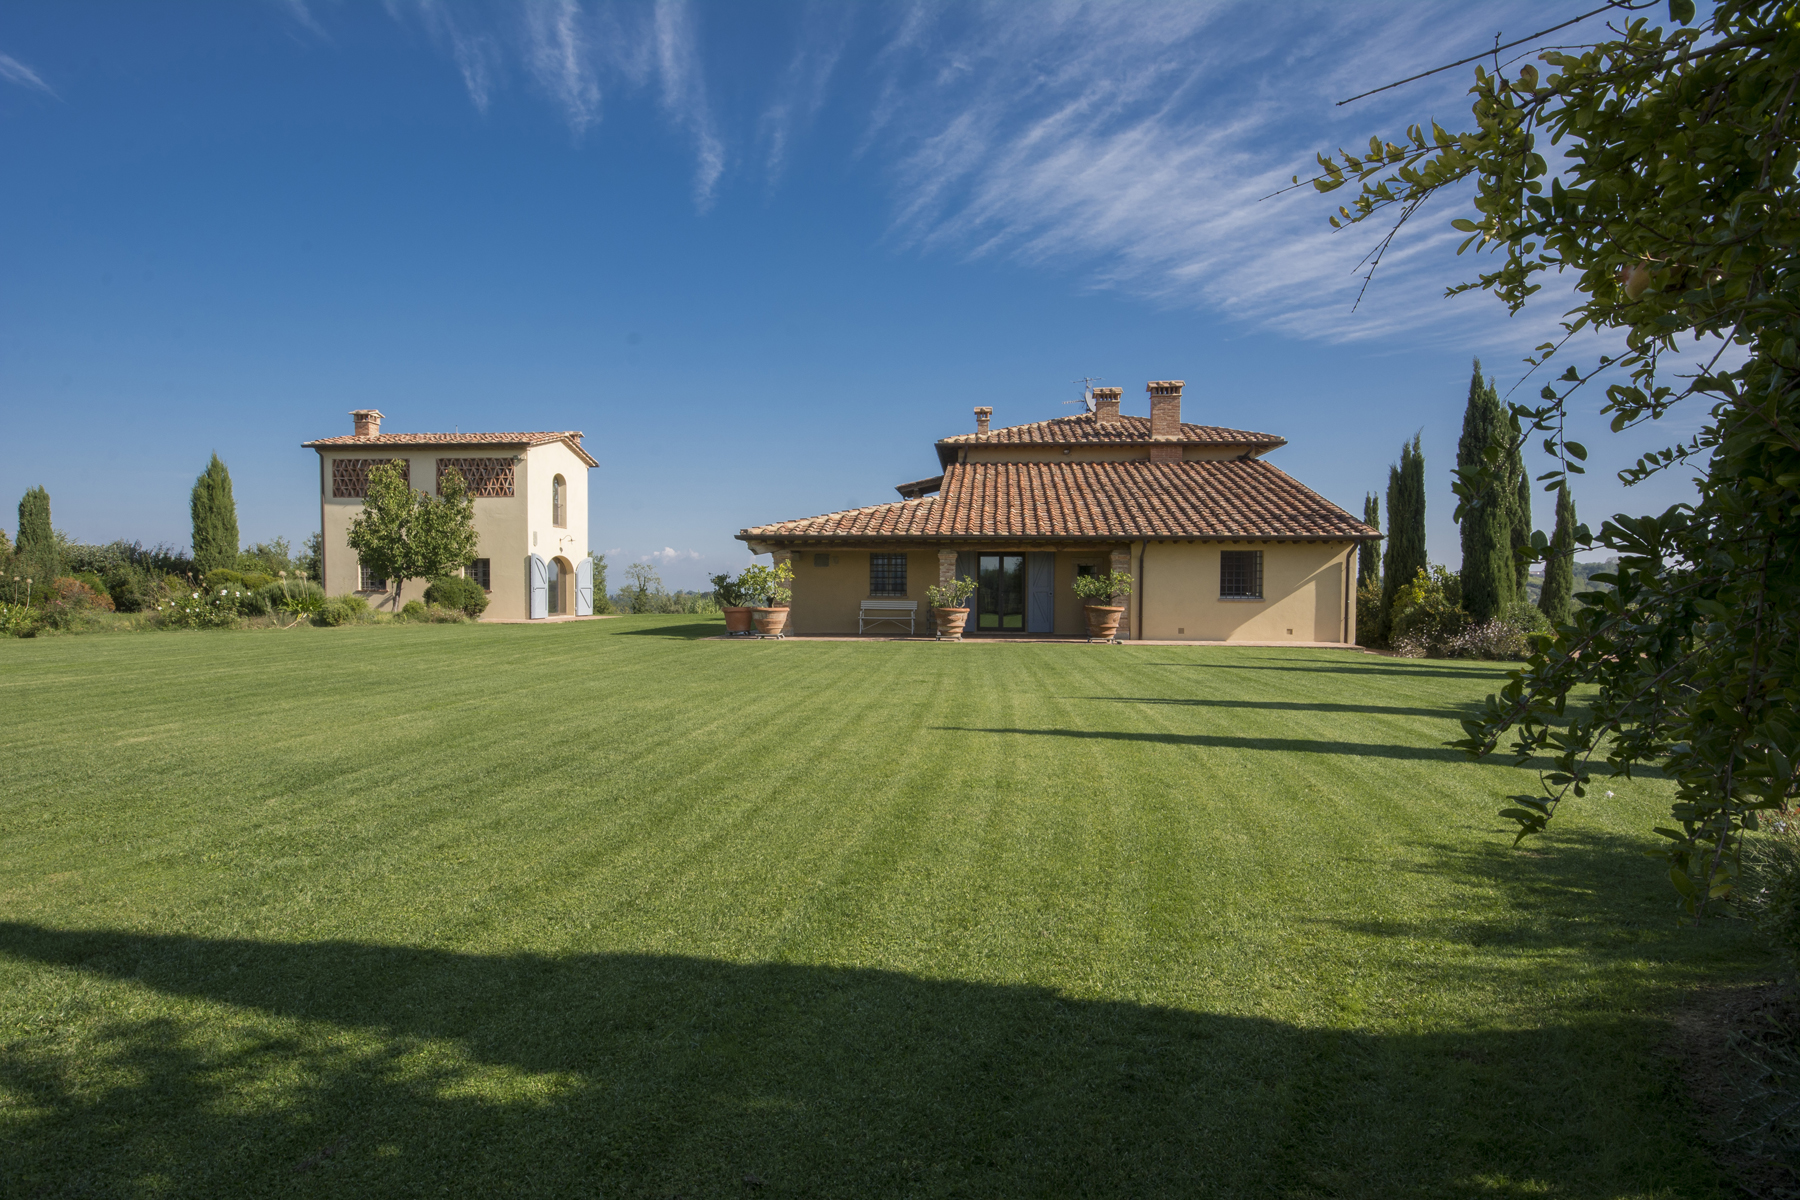 Single Family Home for Sale at Magnificent villa in the Tuscan countryside Via di Valdisonzi Crespina, Pisa 56040 Italy